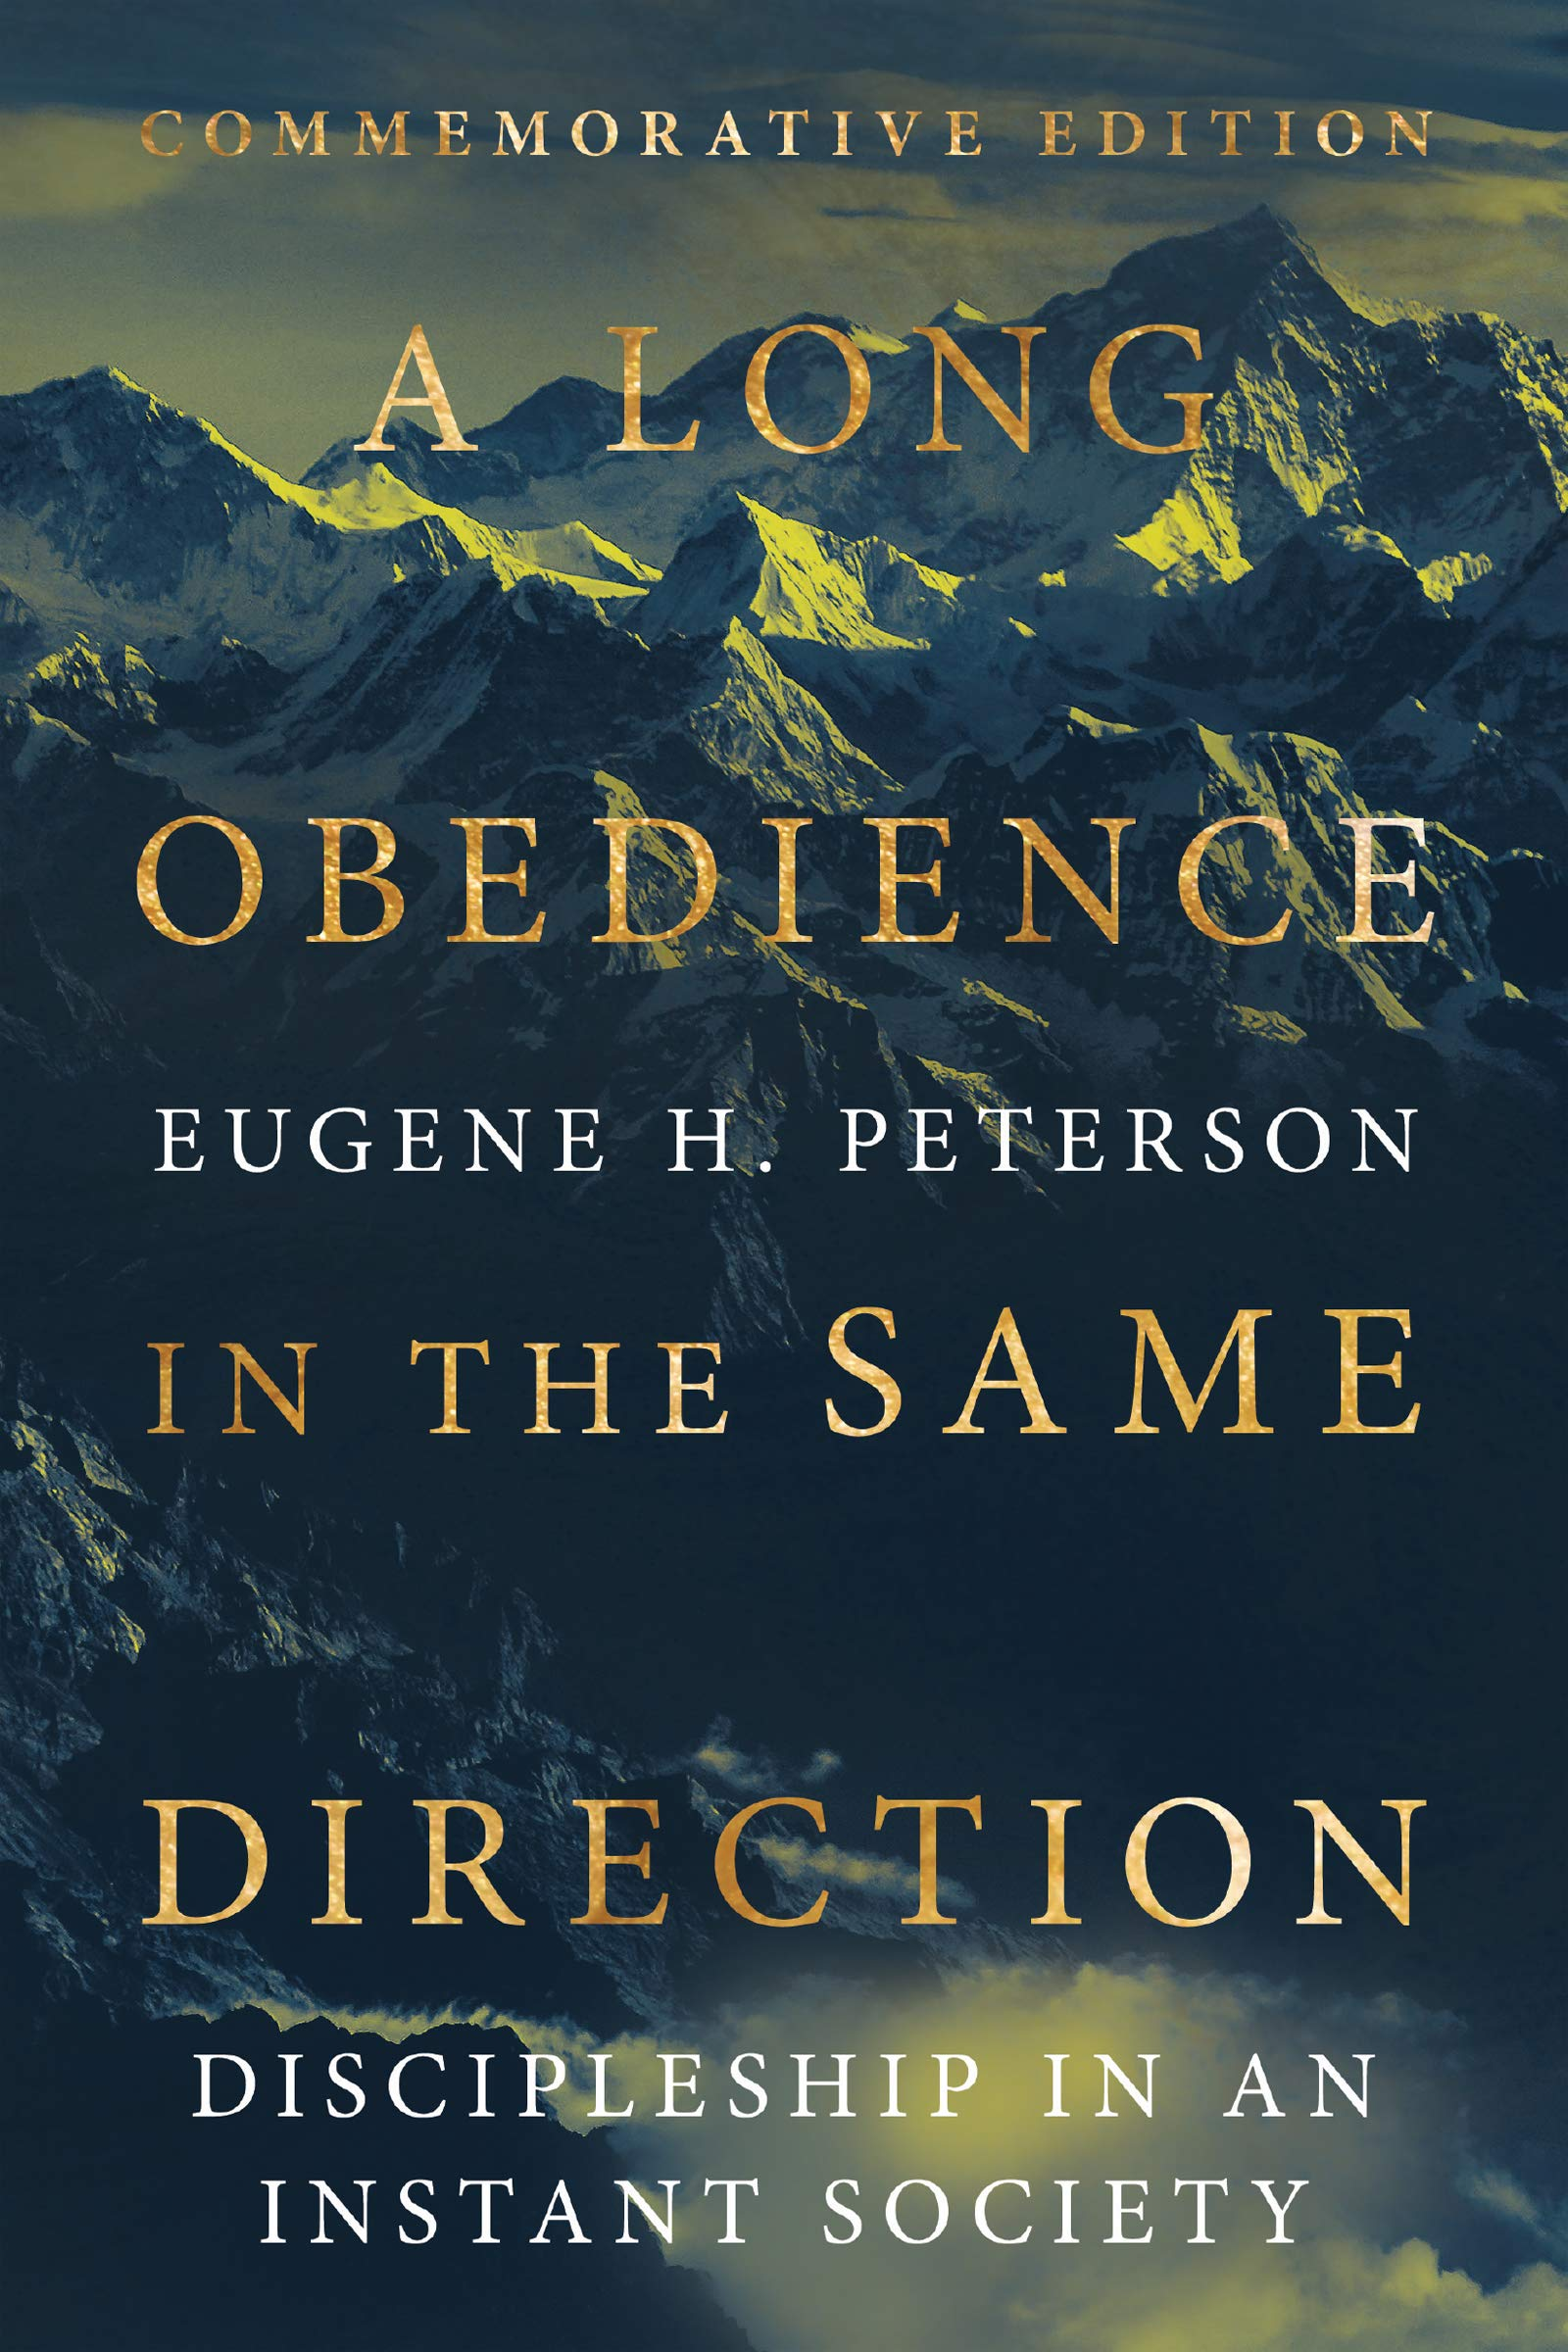 A Long Obedience in the Same Direction: Discipleship in an Instant Society by Eugene Peterson